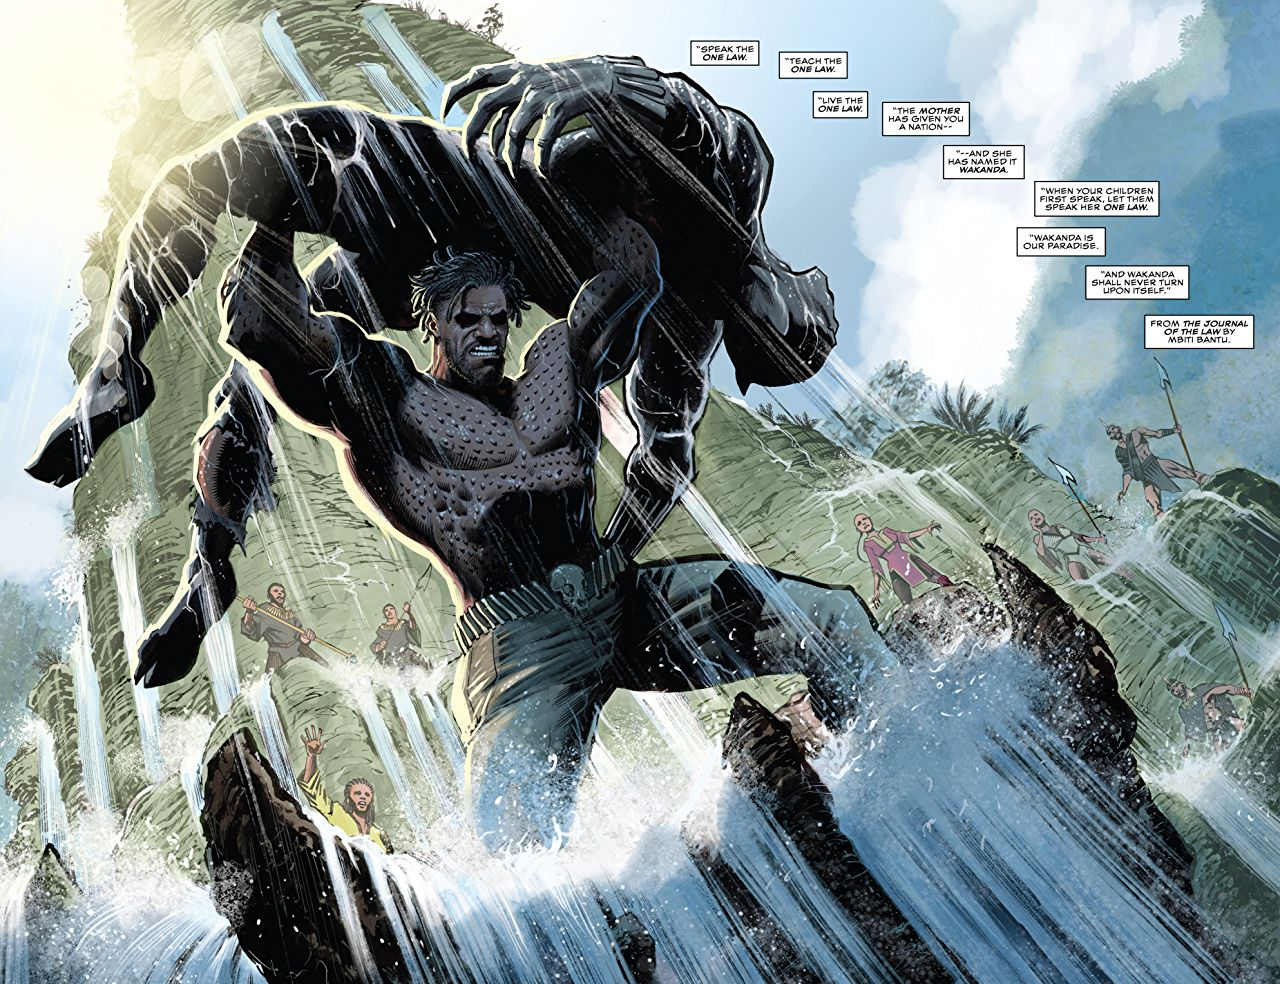 An in-depth look at the origins of Black Panther's archenemy.